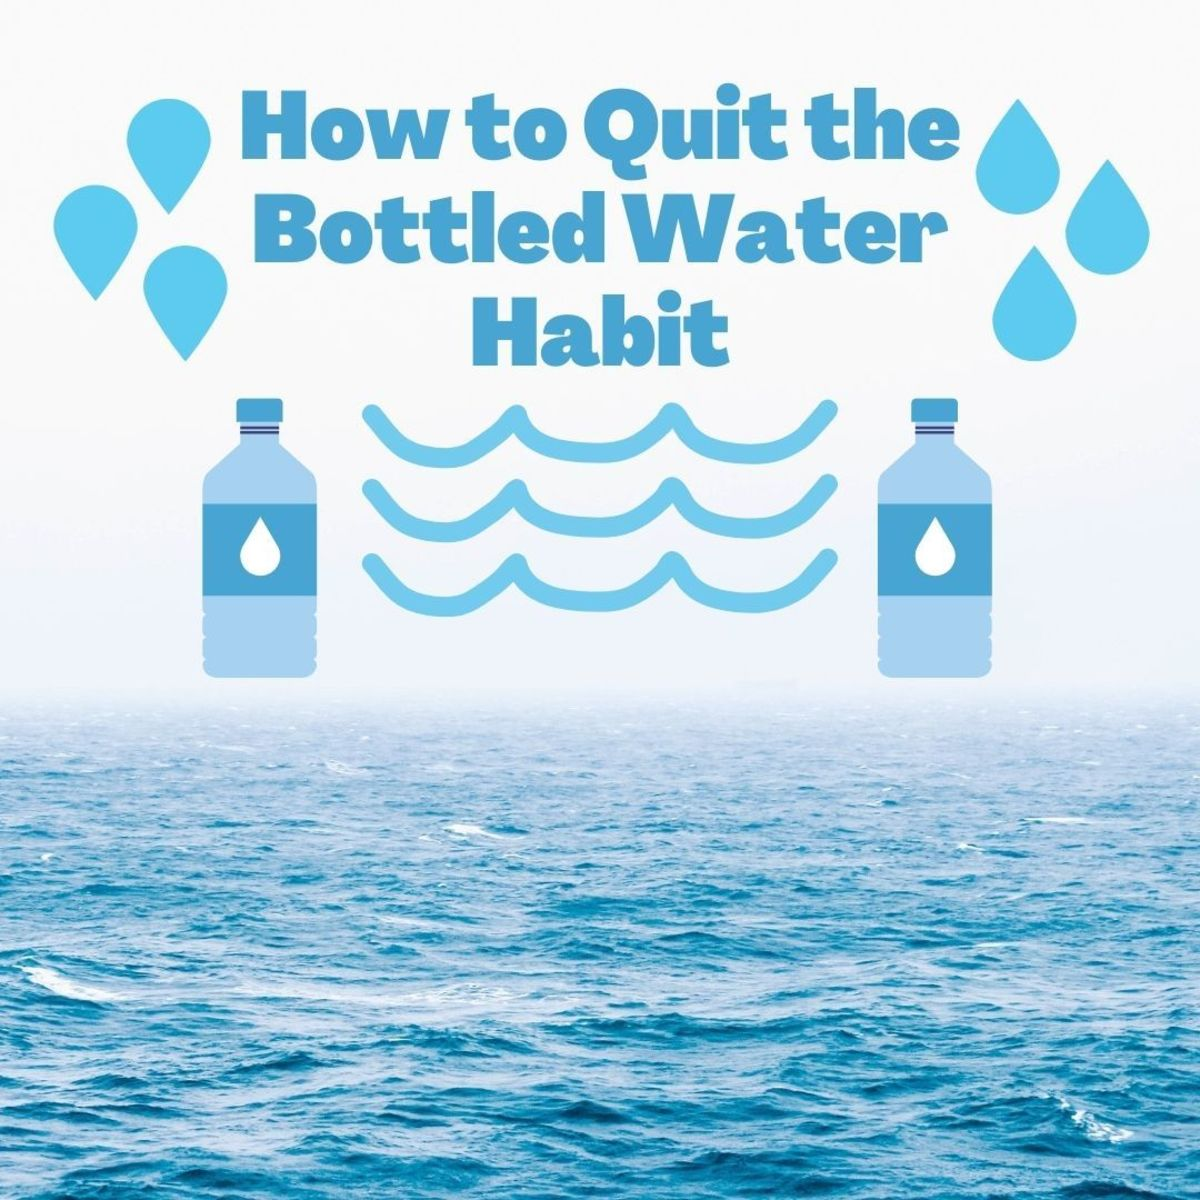 Figure out how you can quit your bottled water habit!